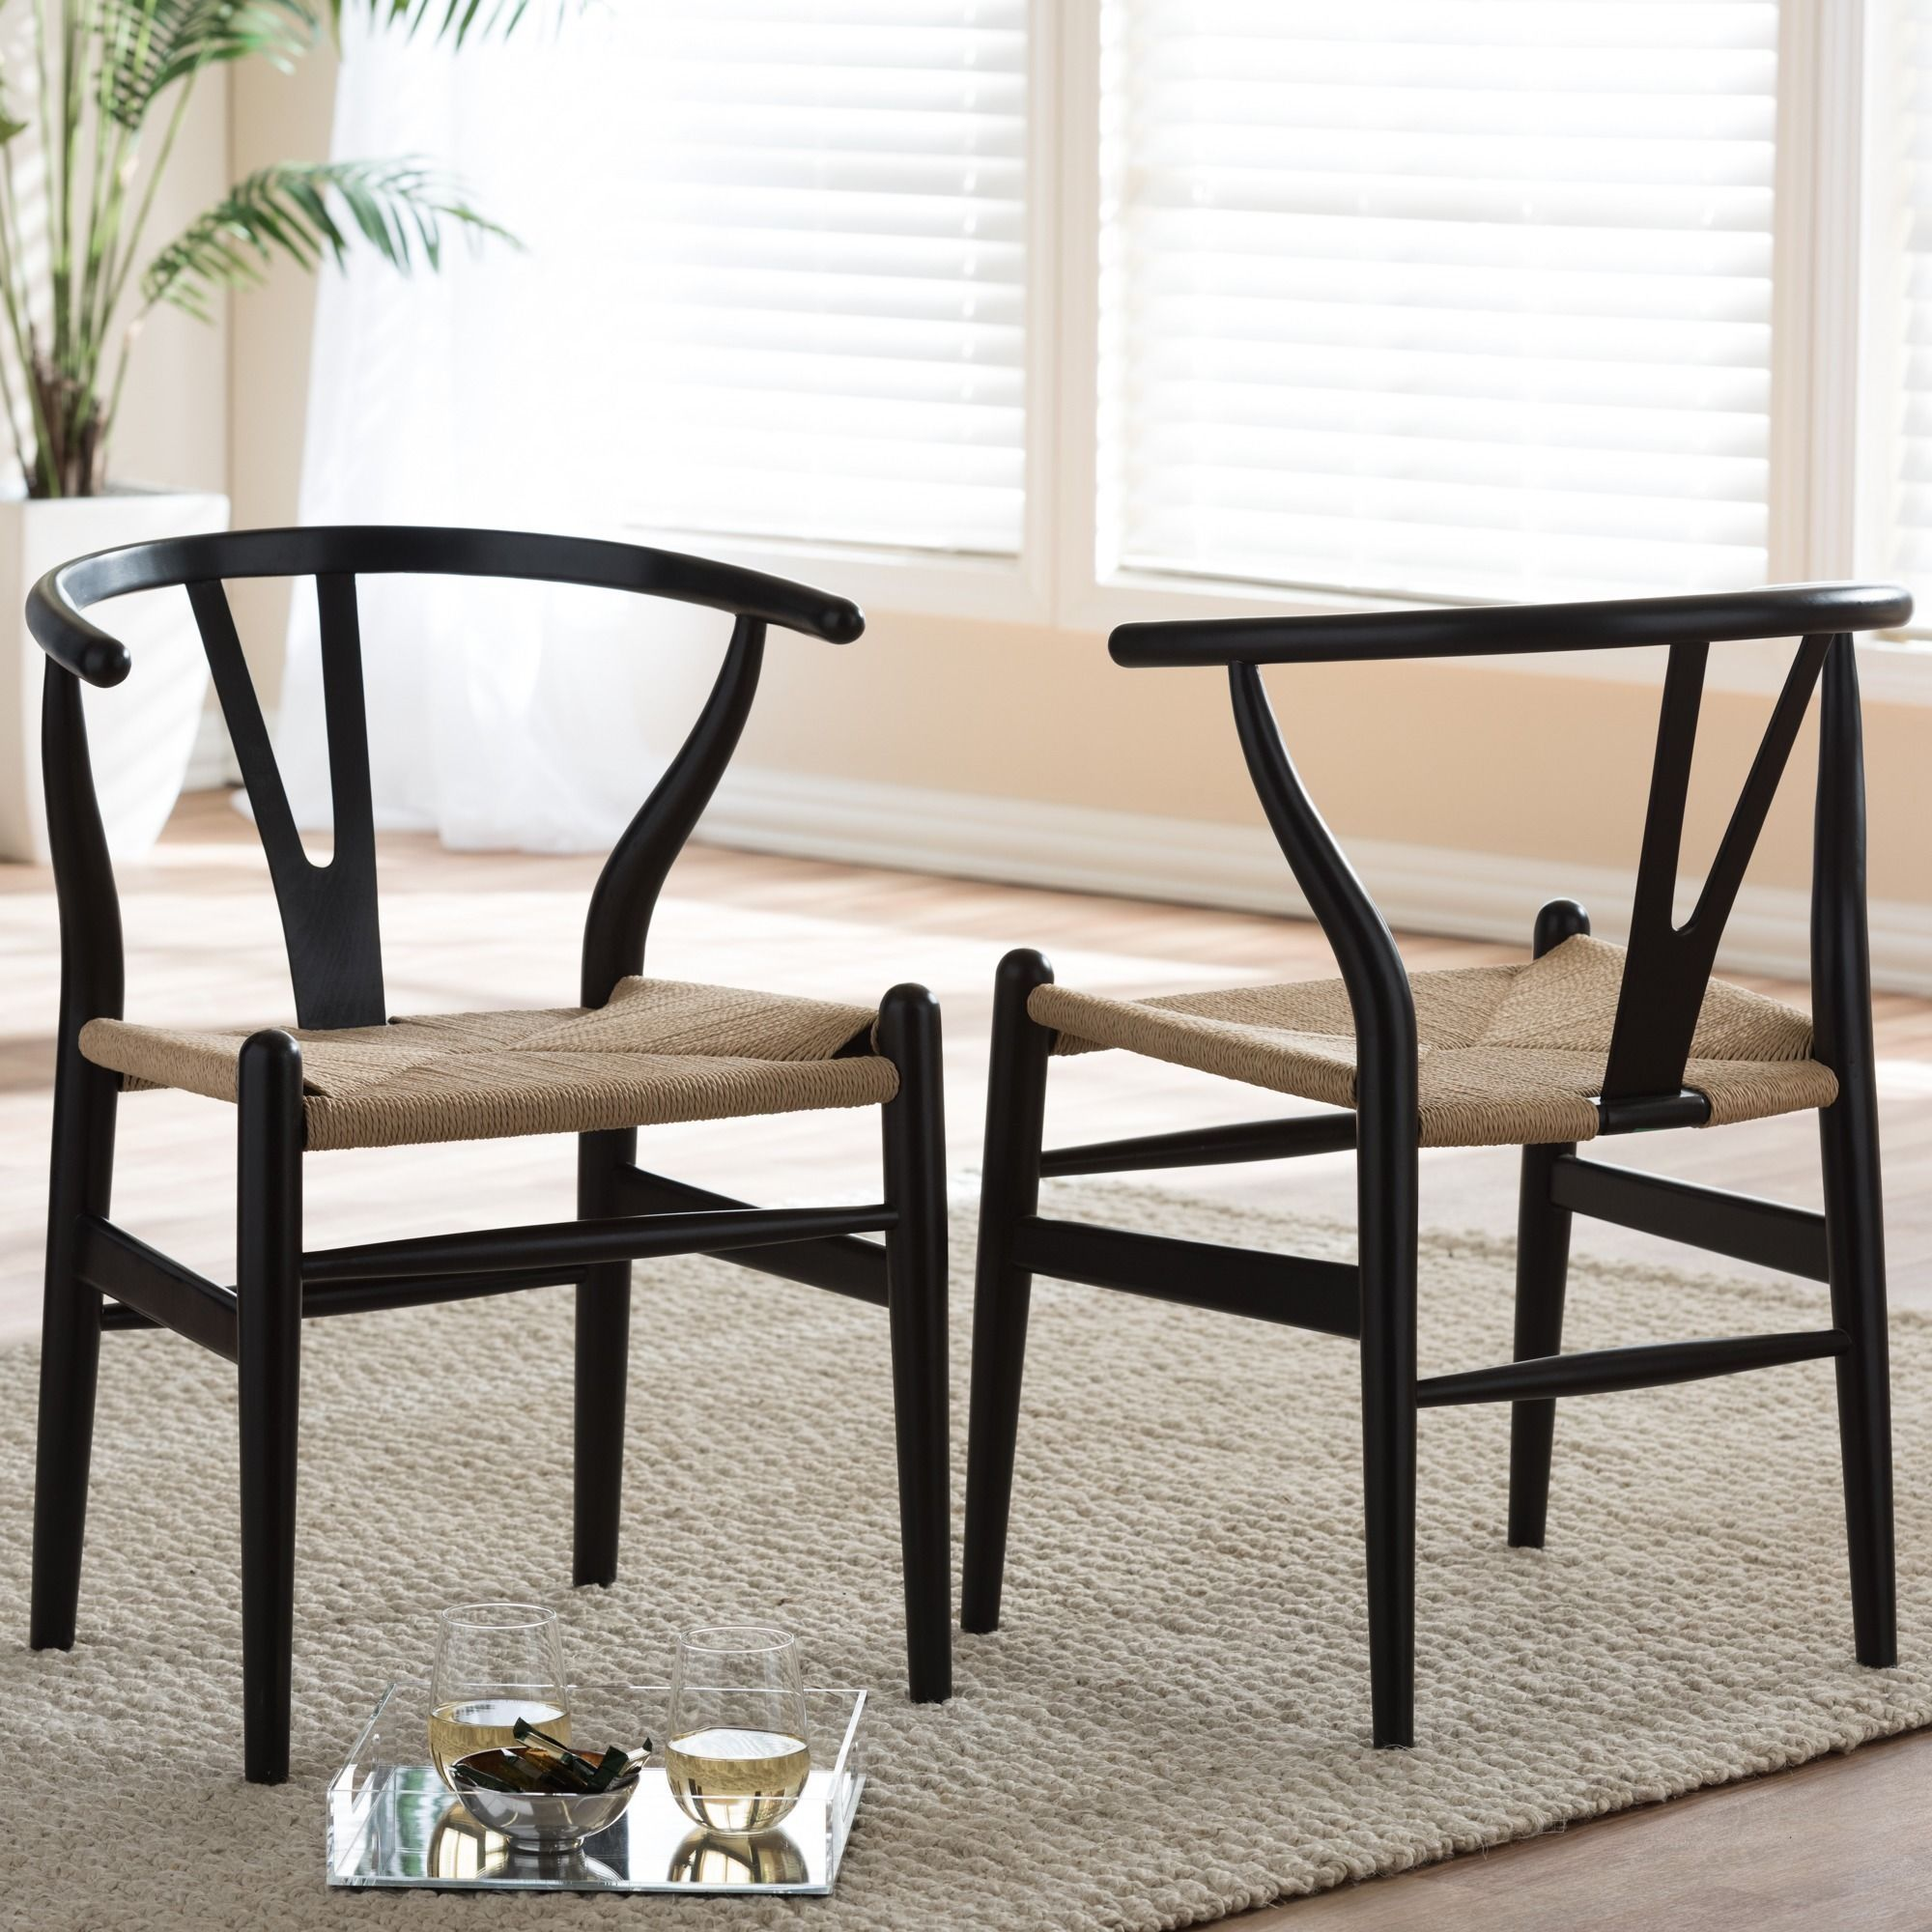 Baxton Studio Wishbone Modern Black Wood Dining Chair With